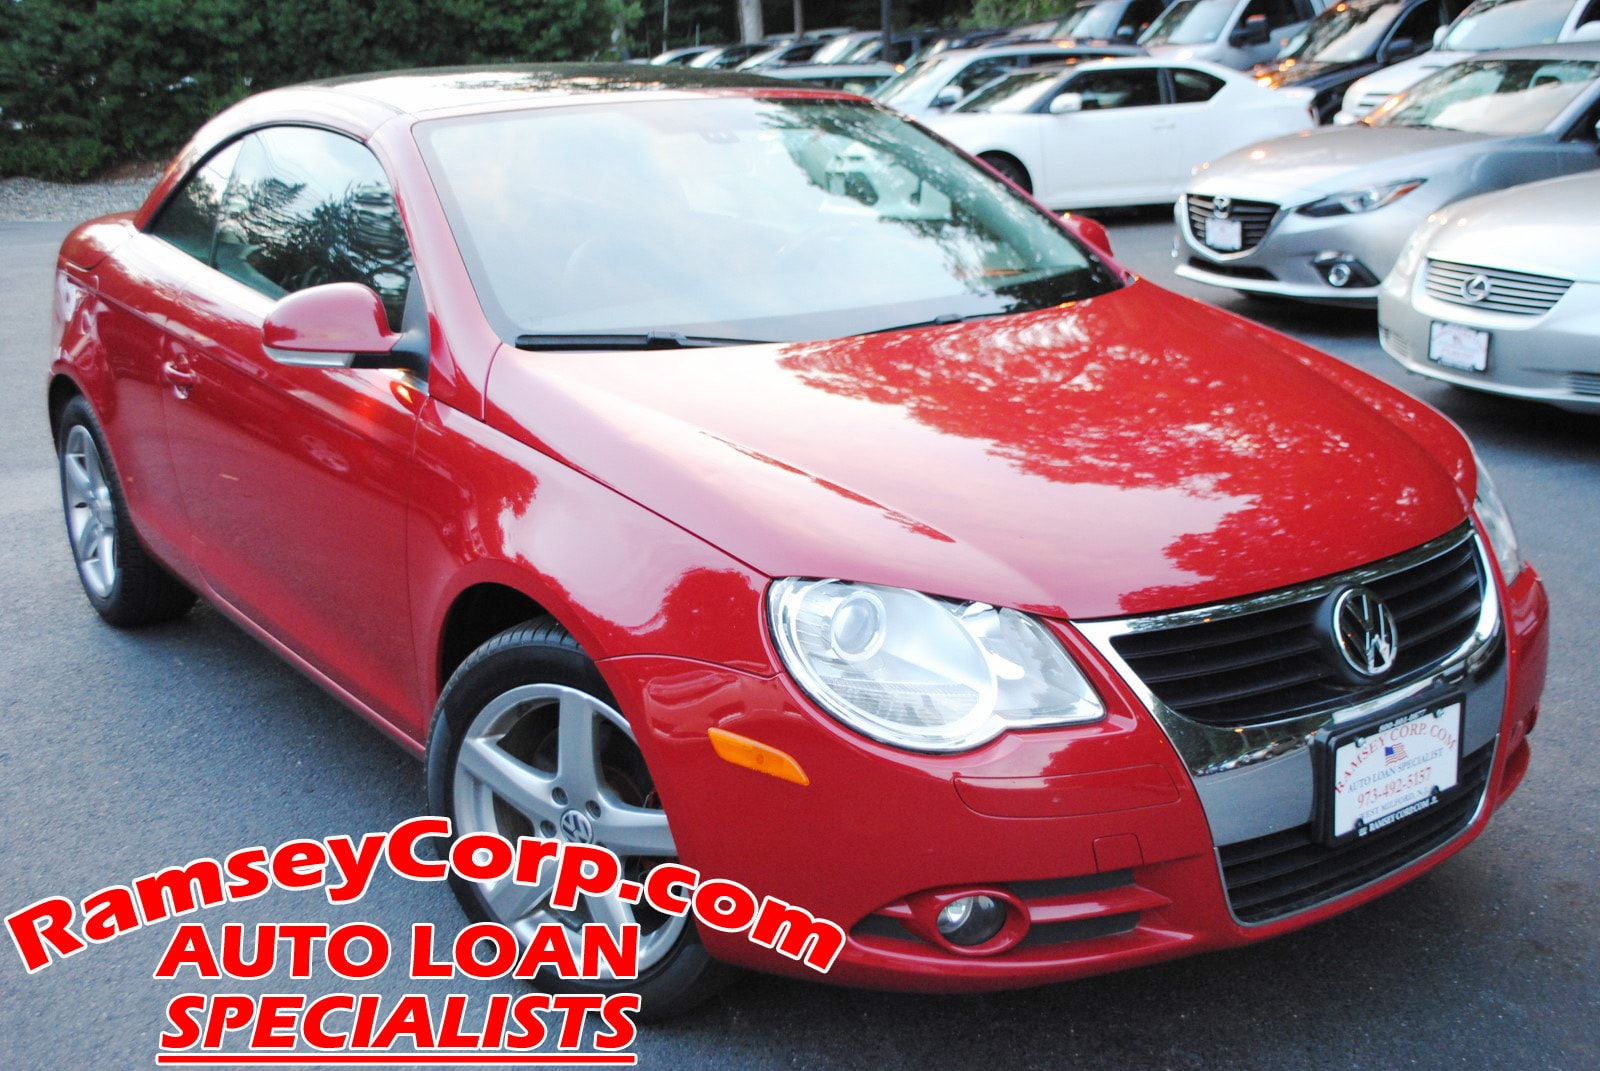 Used 2007 Volkswagen Eos For Sale West Milford Njrhramseycorp: 2007 Vw Eos Turbo Radio At Elf-jo.com